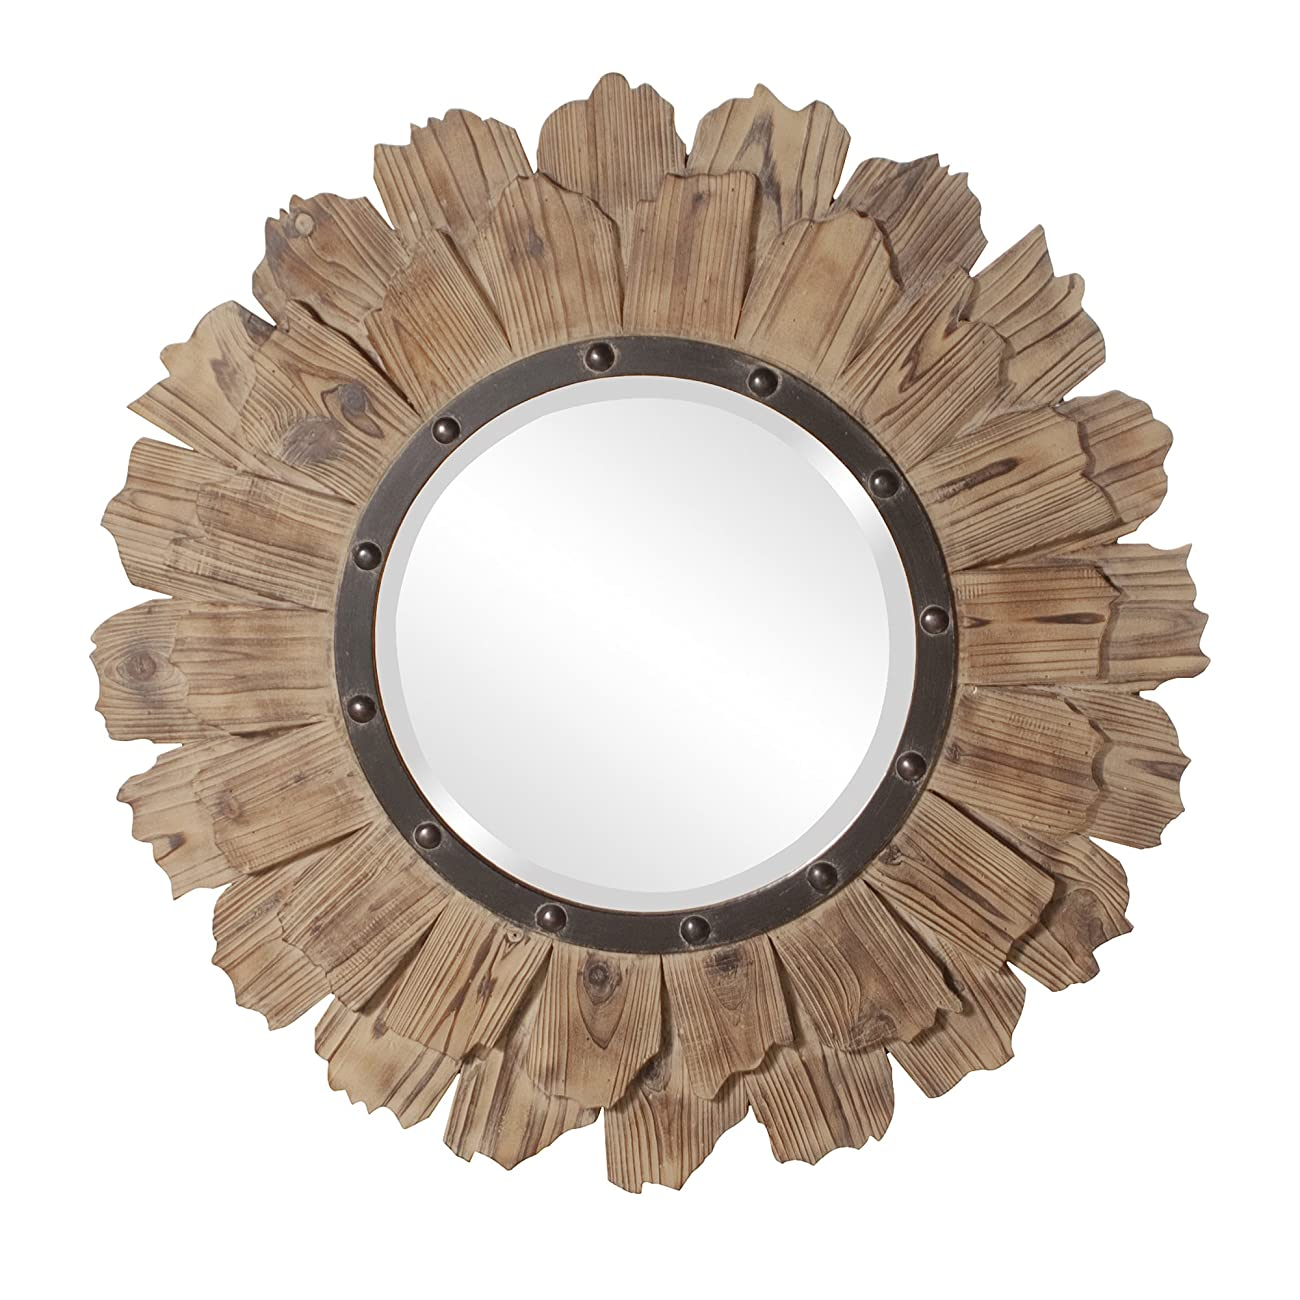 Howard Elliott 37075 Hawthorne Round Mirror, 35-Inch, Layered Natural Wood 0